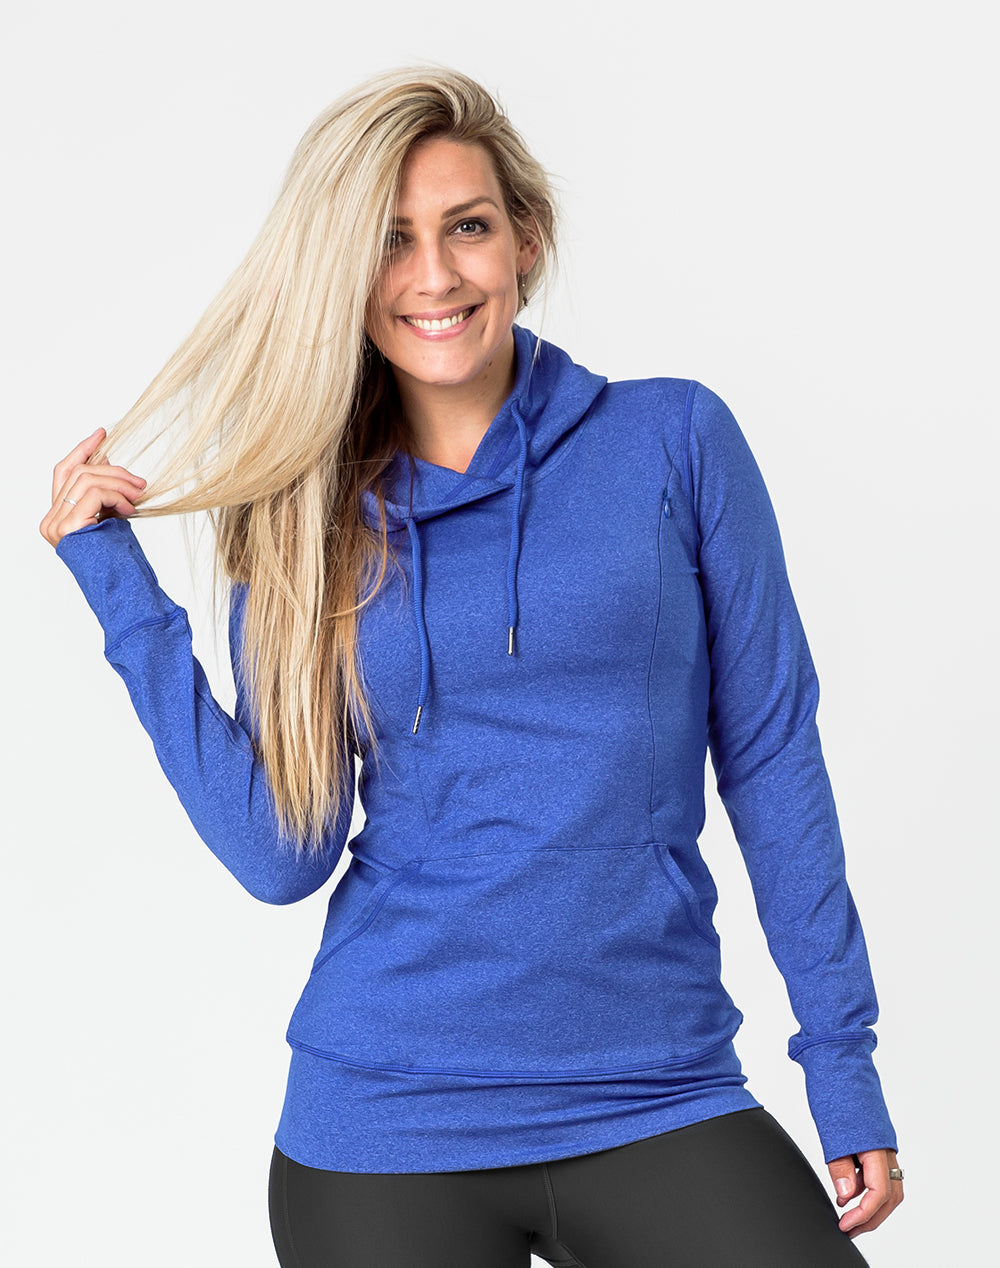 active mother wearing a blue breastfeeding hoodie and leggings